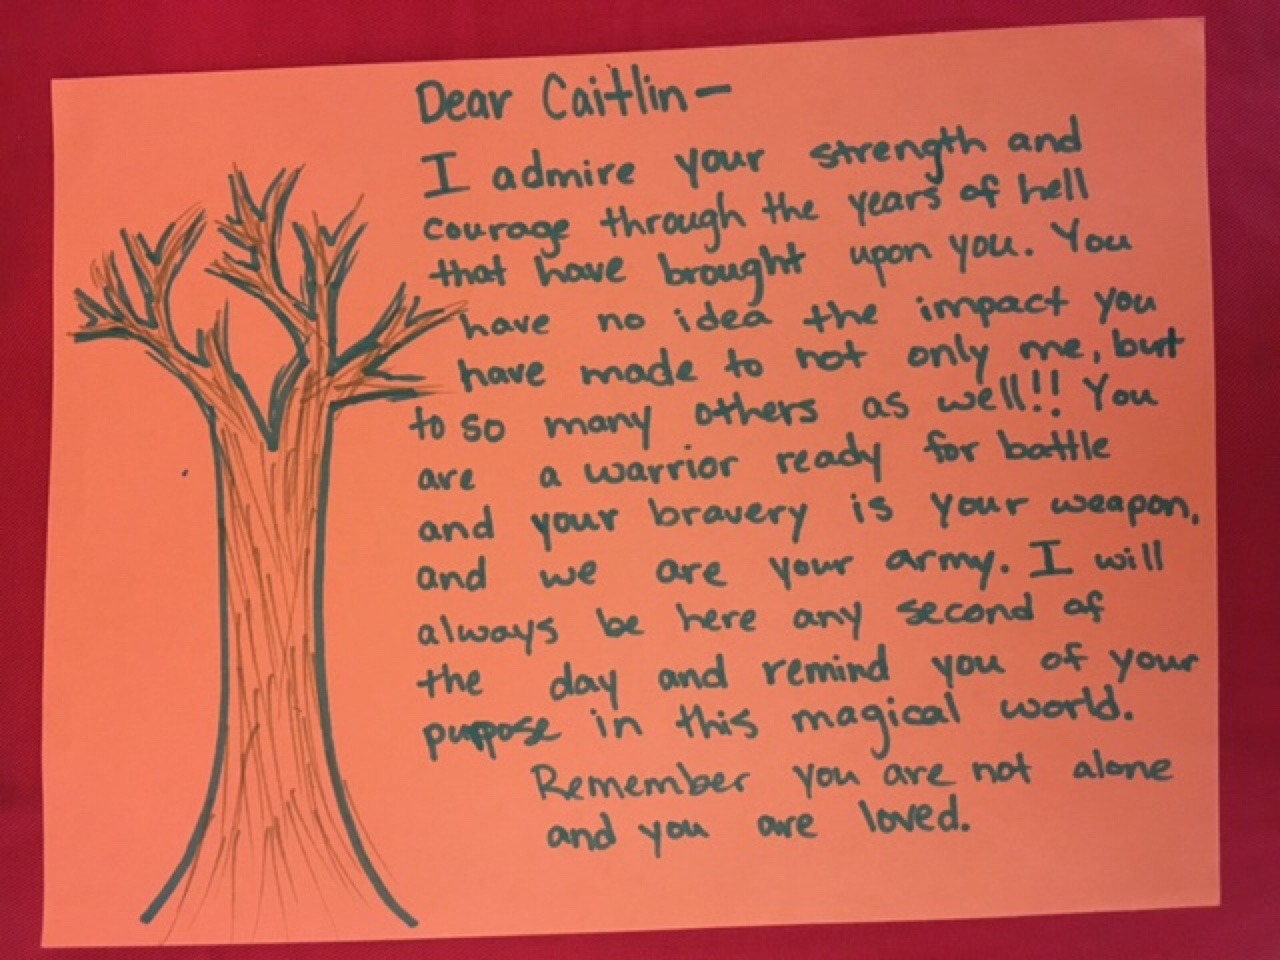 Dear Caitlin–  I admire your strength and courage through the years of hell that have brought upon you. You have no idea the impact you have made to not only me, but to so many others as well!! You are a warrior ready for battle and your bravery is your weapon, and we are your army. I will always be here any second of the day and remind you of your purpose in this magical world.  Remember you are not along and you are loved.